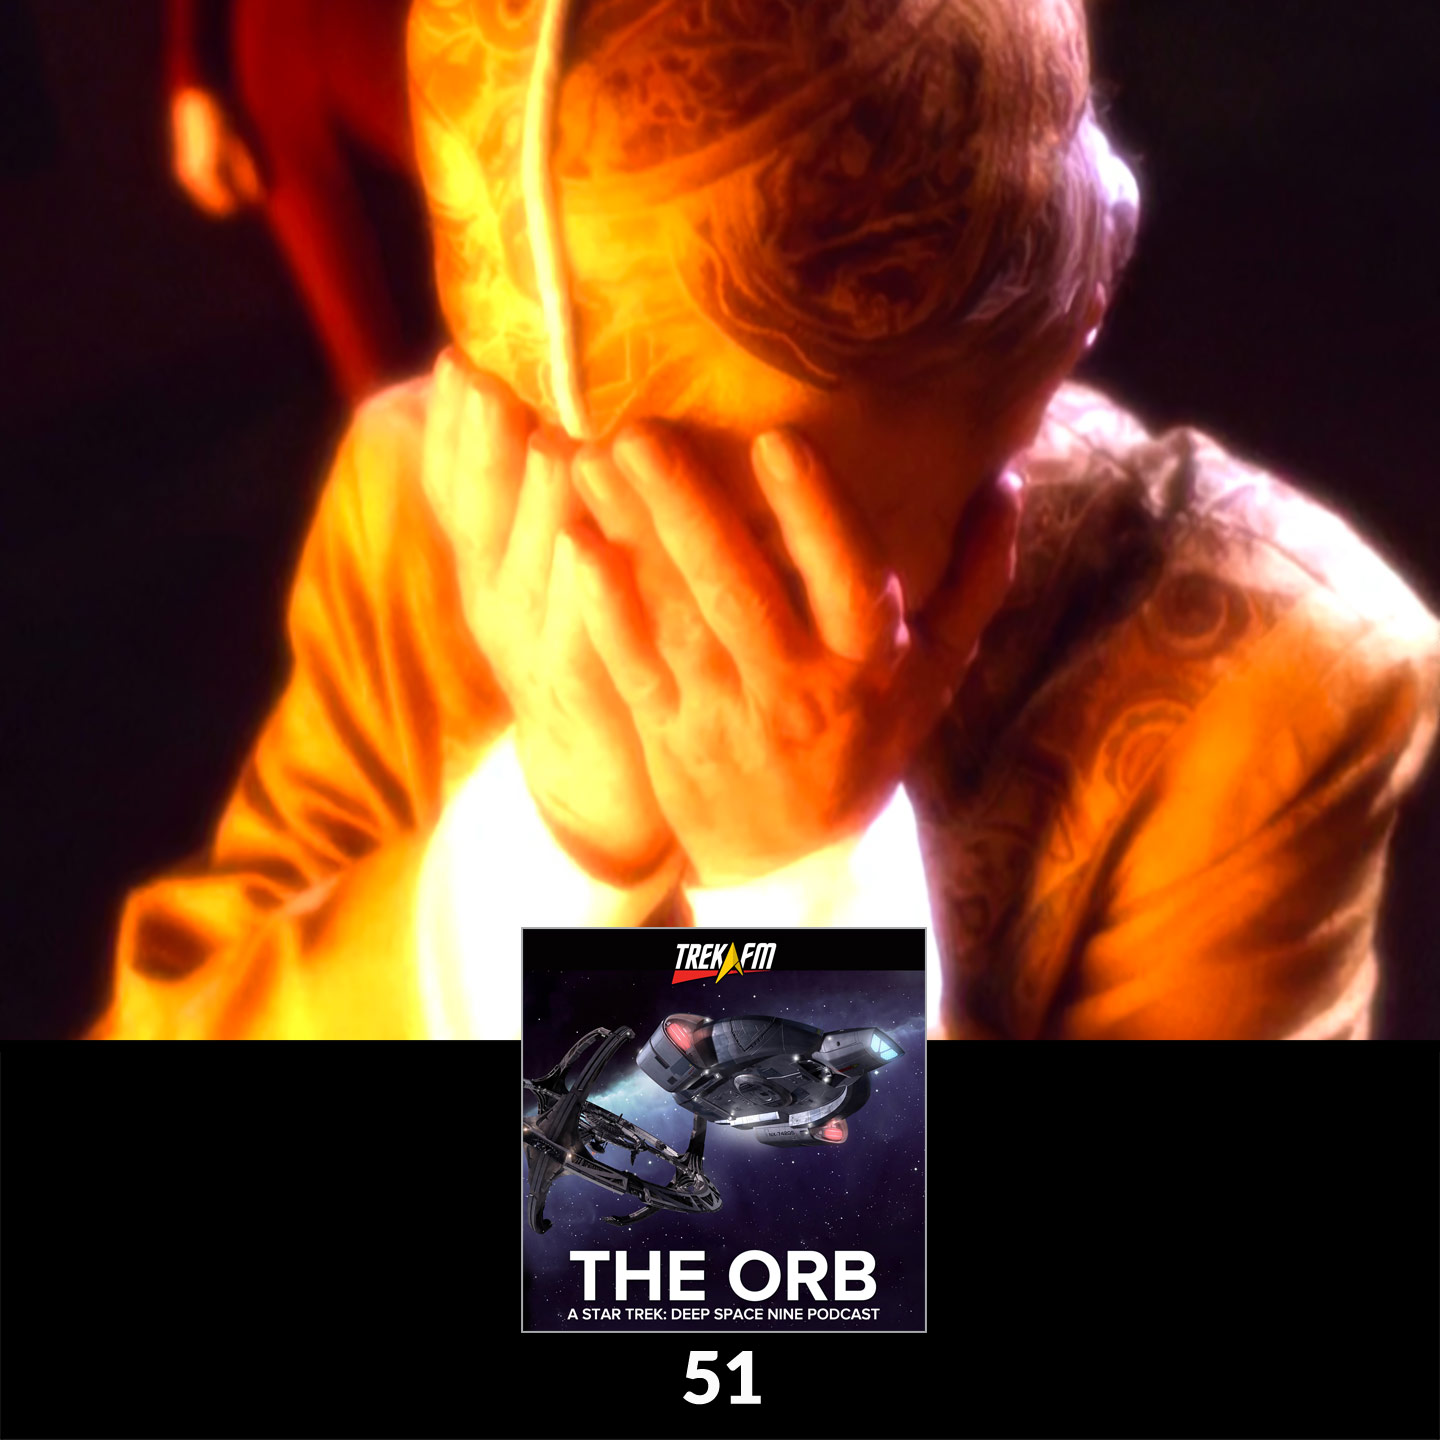 The Orb 51: To Come As an Angel of Light